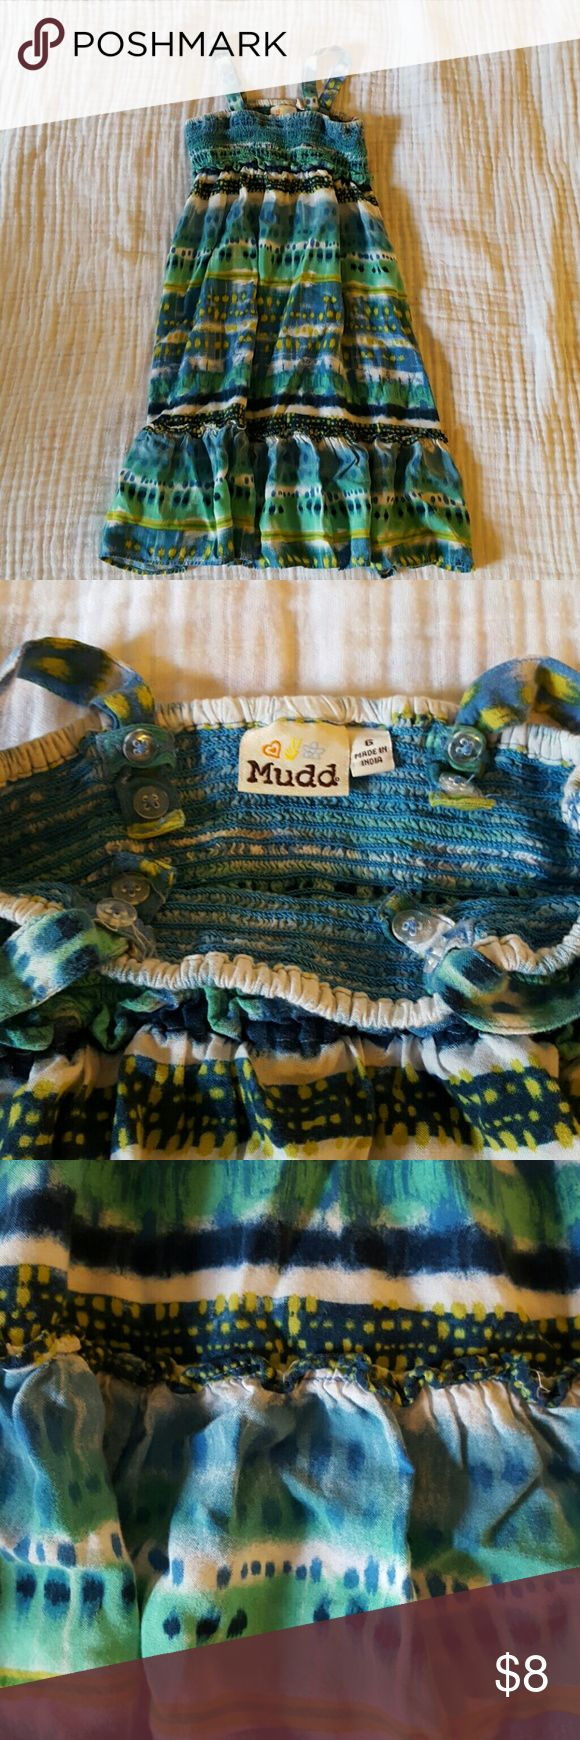 Mudd size 6 girls sundress Mudd size 6 girls sundress.  This dress is really cute and soft.  The straps have 2 buttons on each side to adjust the size.  Great condition. mudd Dresses Casual